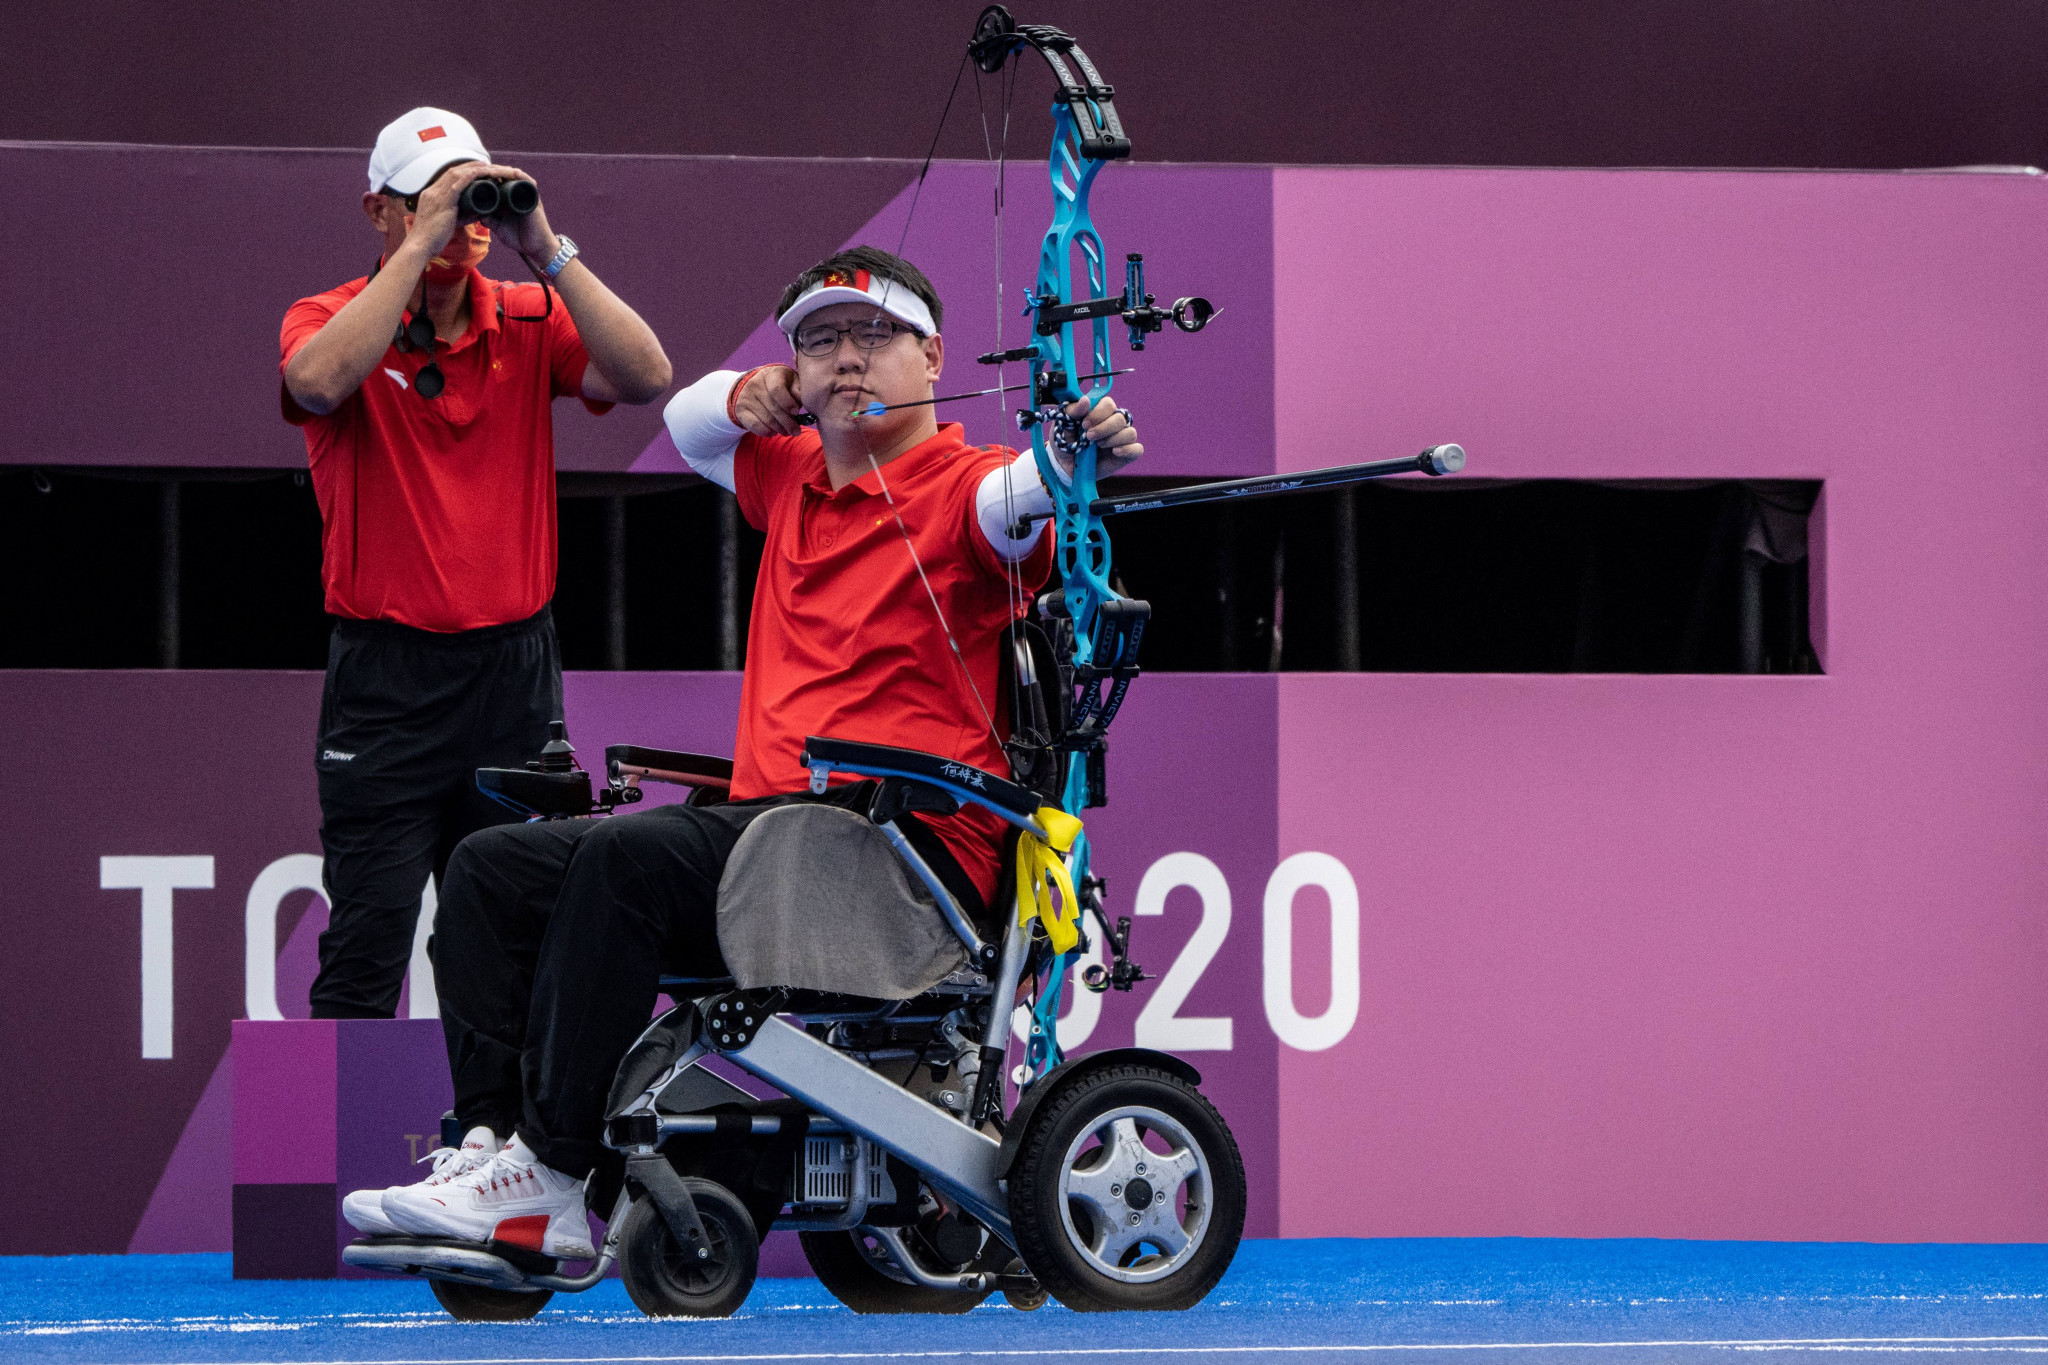 He Zihao wins second archery gold at Tokyo 2020 Paralympics with compound triumph